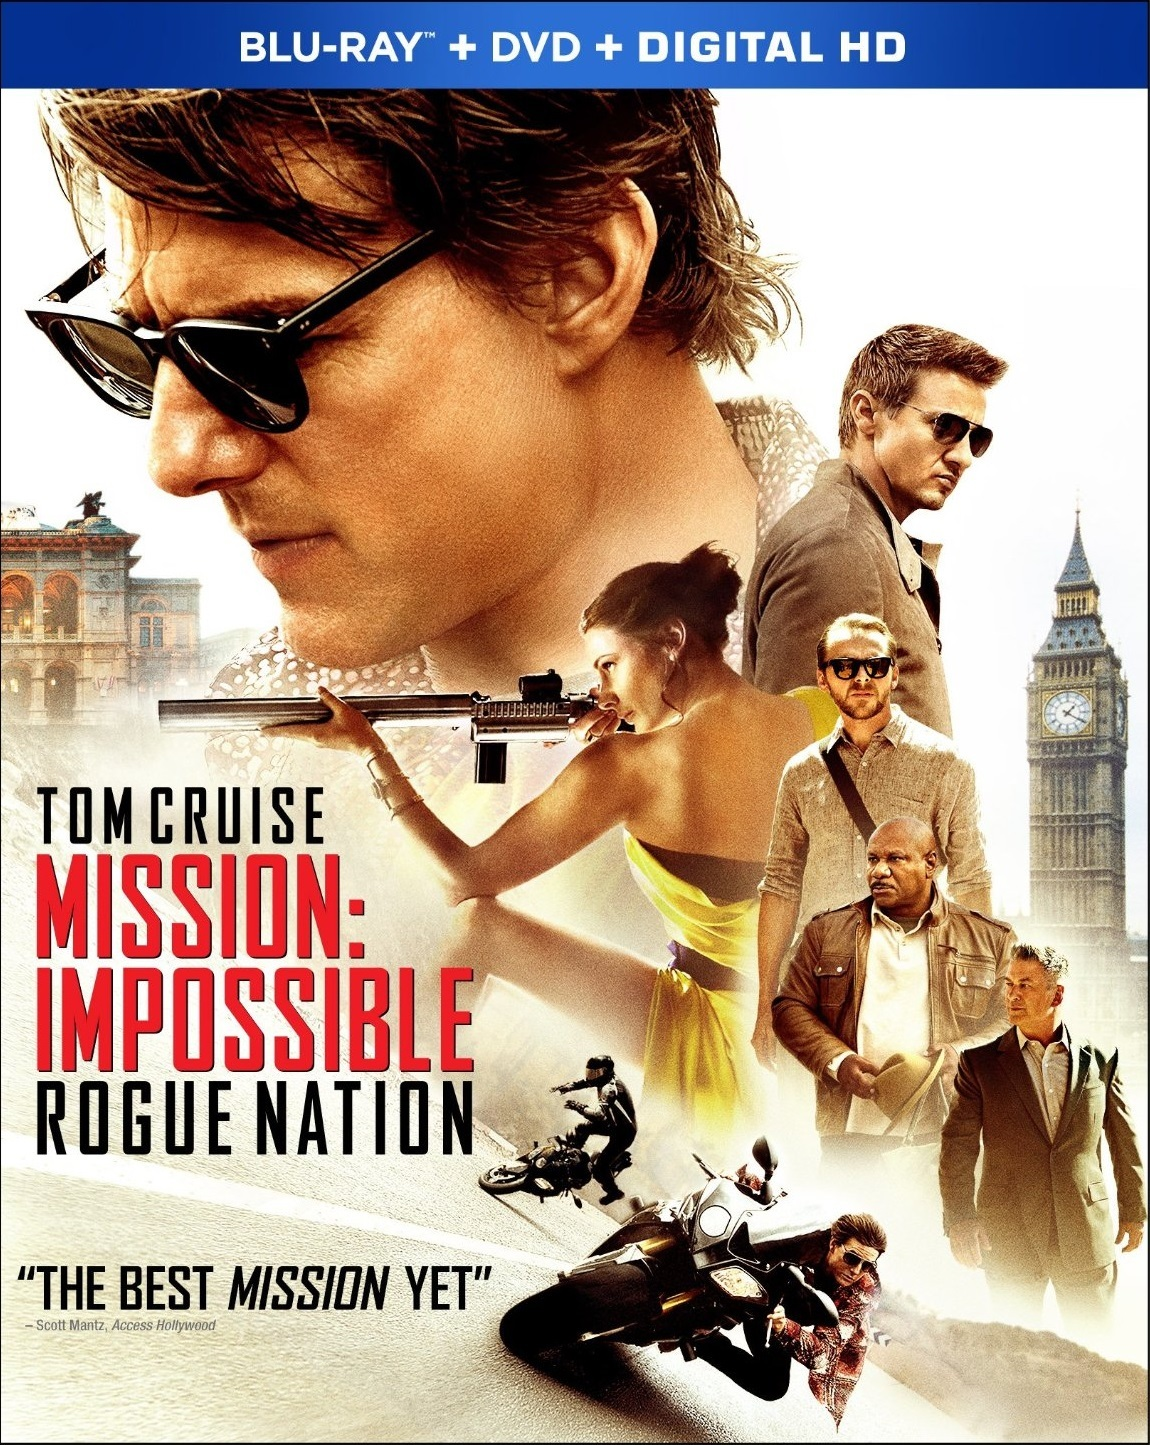 Mission: Impossible - Rogue Nation poster image